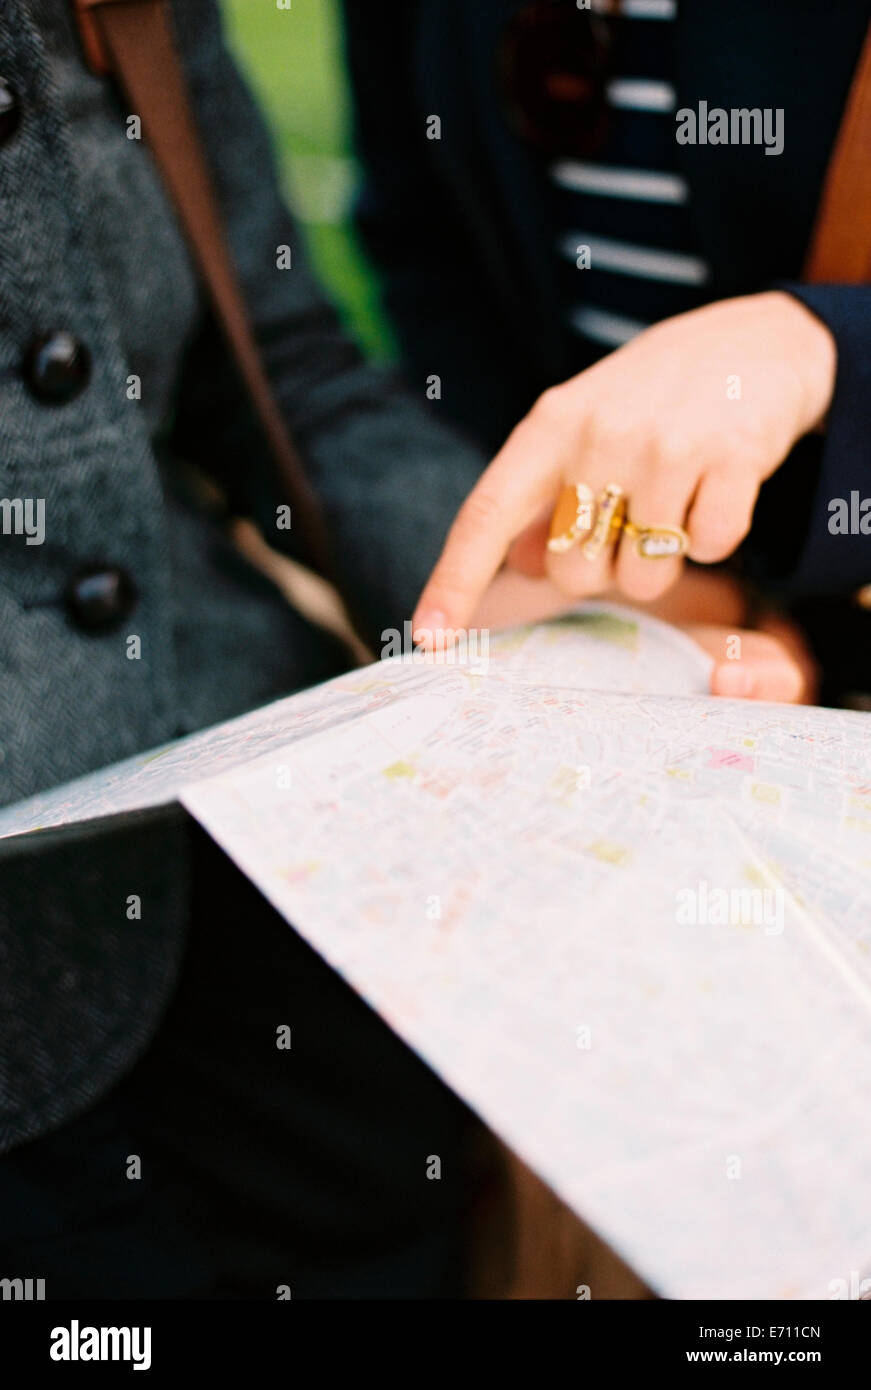 Two people using a map or guide book to find their way around a city. - Stock Image